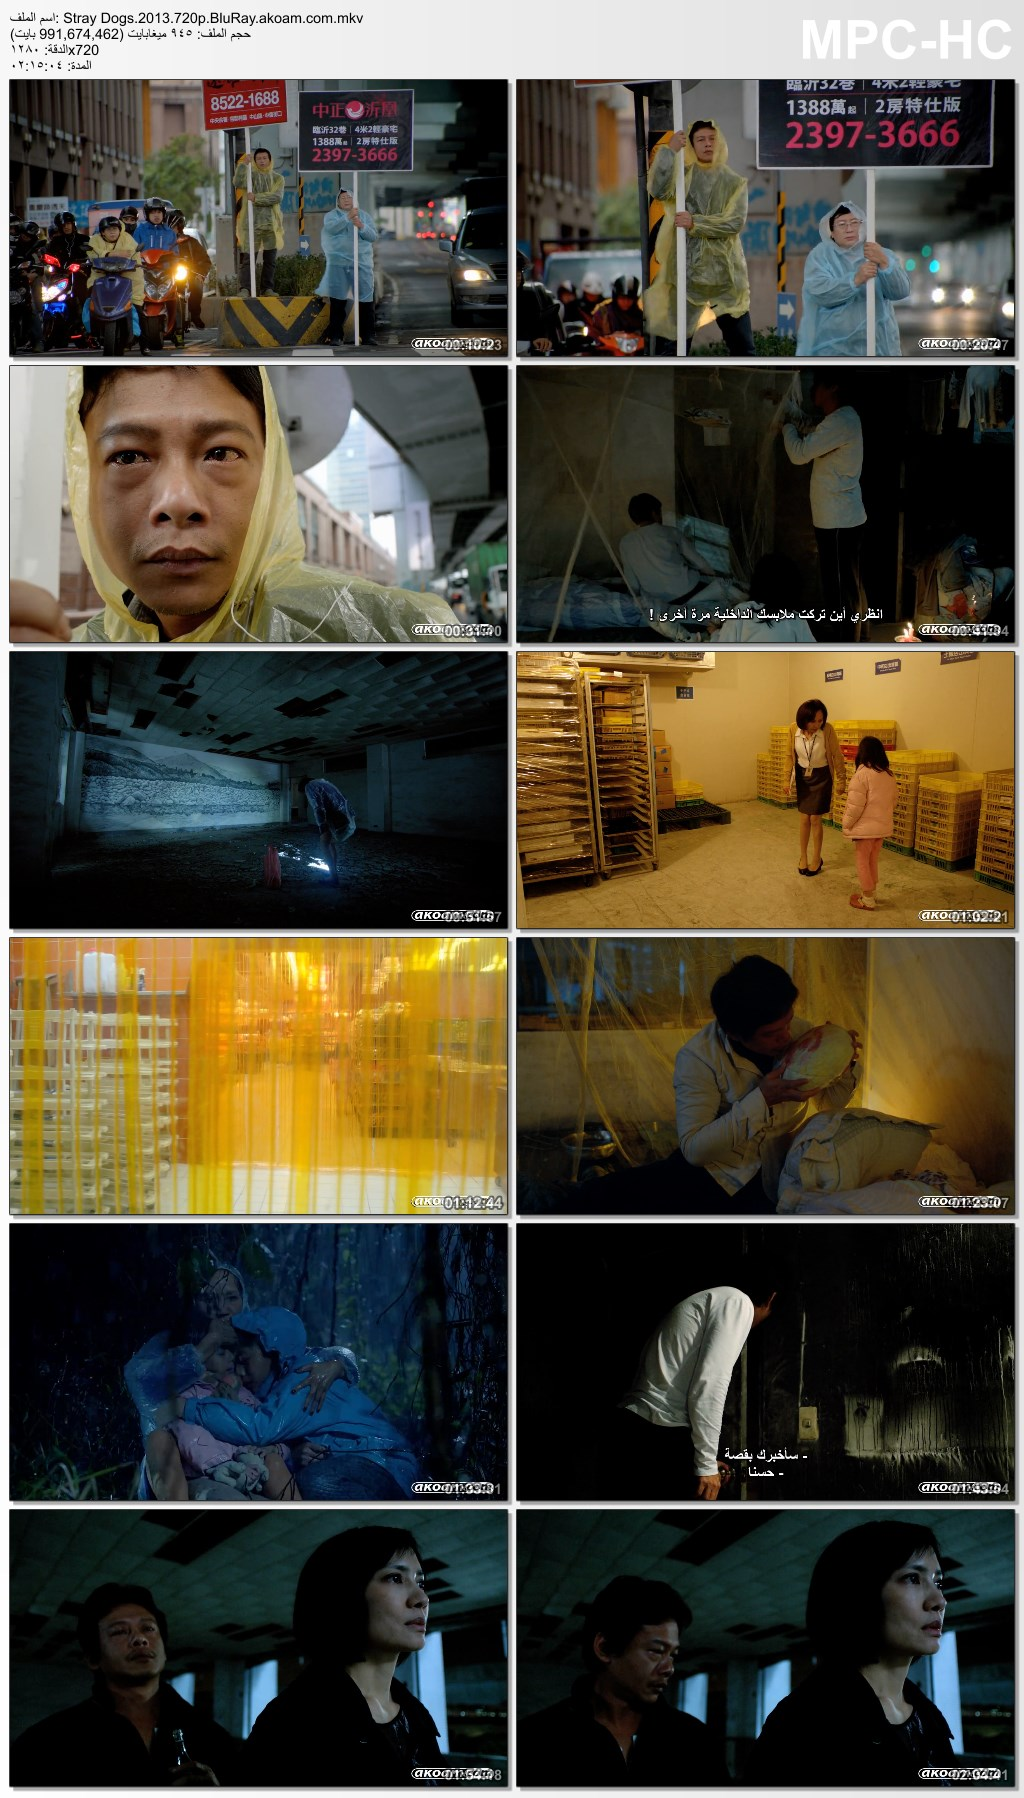 Stray Dogs 2015,Stray Dogs,Jiao you